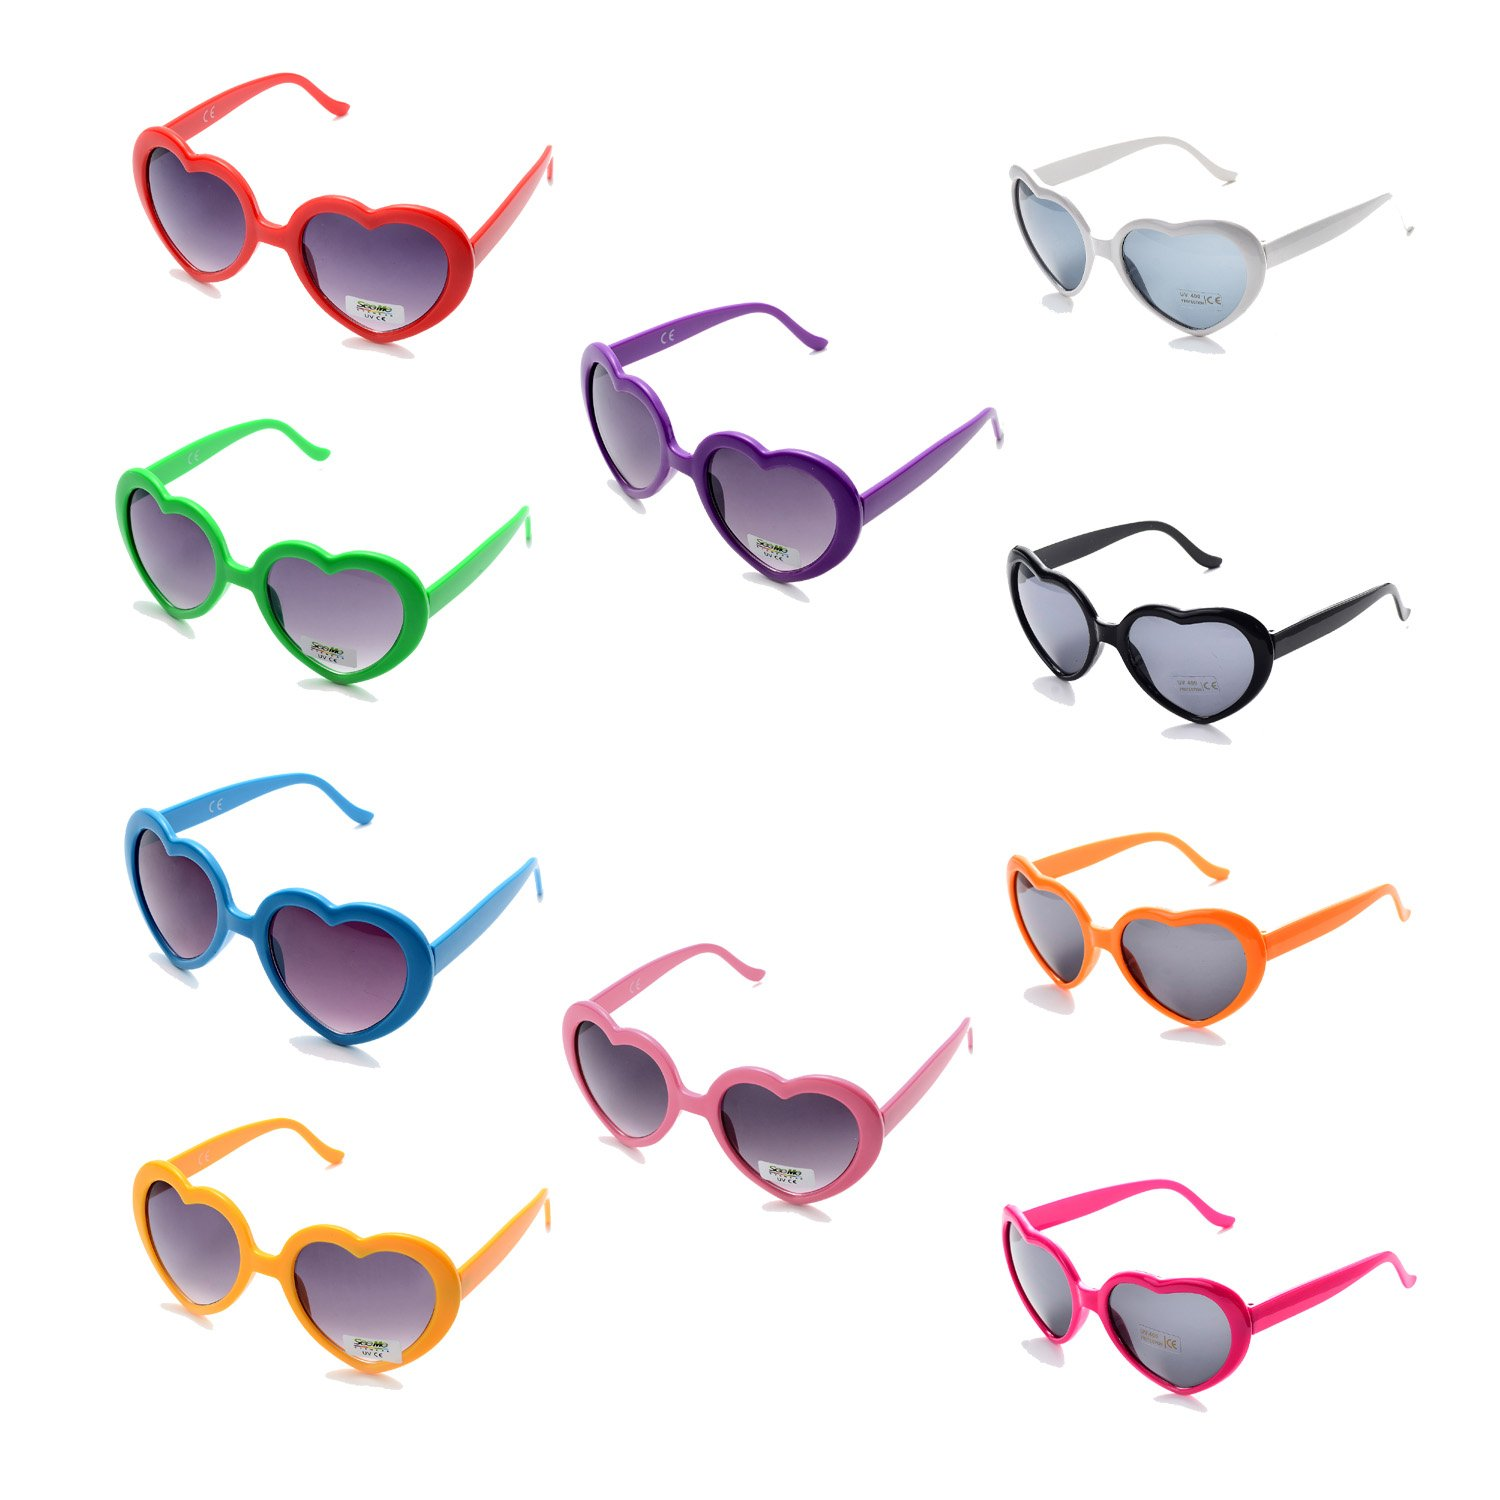 a9f8762eb42 Amazon.com  Pack of 10 Neon Heart Shaped Resin Sunglasses for Womens Kids  in Party and Festival (Mix10 Pack)  Toys   Games